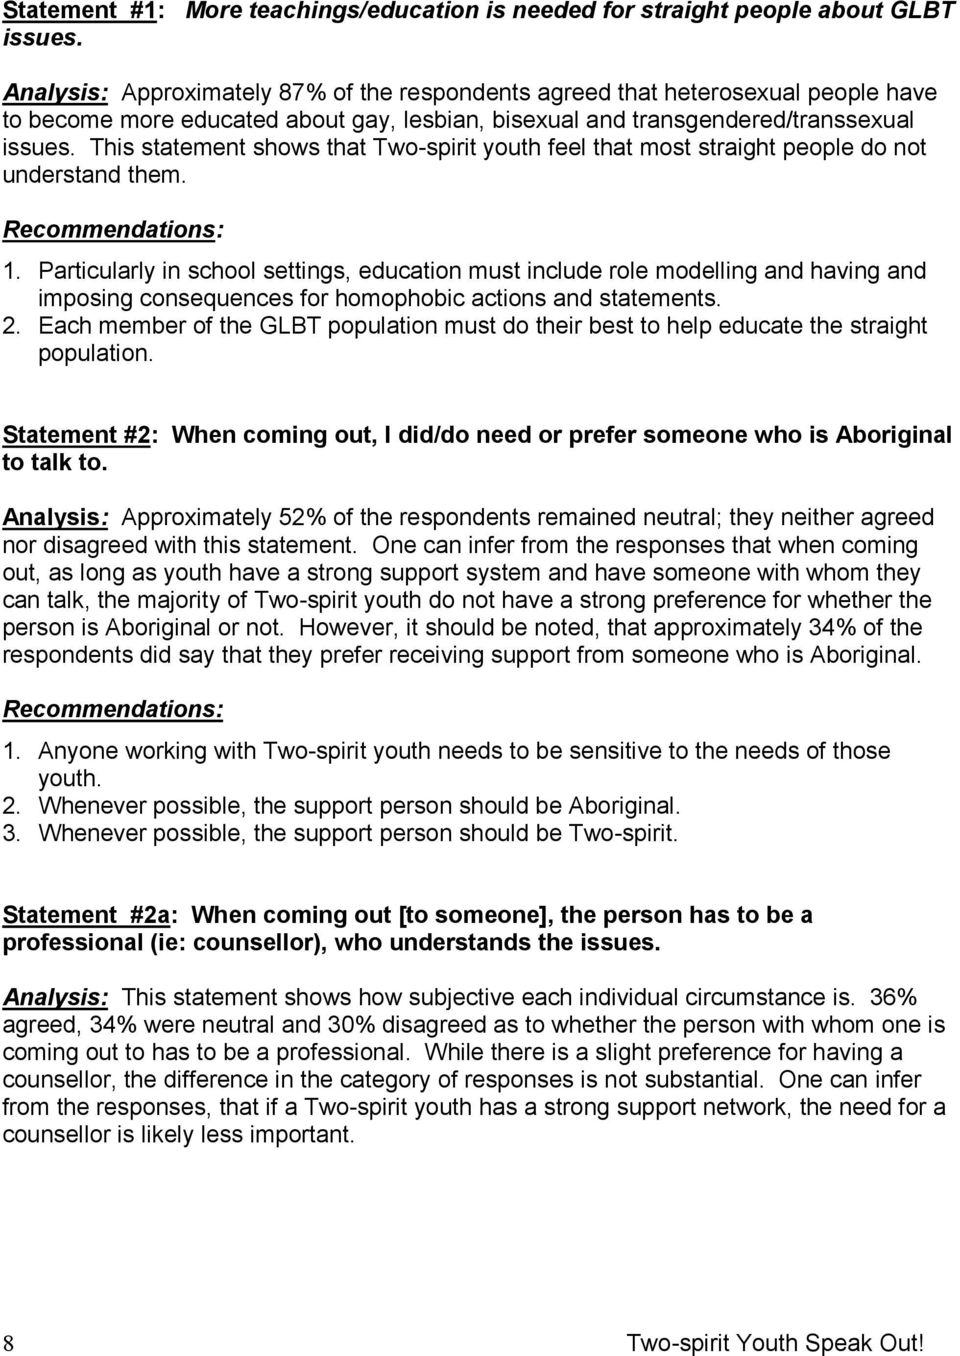 bisexual and transgendered/transsexual issues. This statement shows that Two-spirit youth feel that most straight people do not understand them. Recommendations: 1.